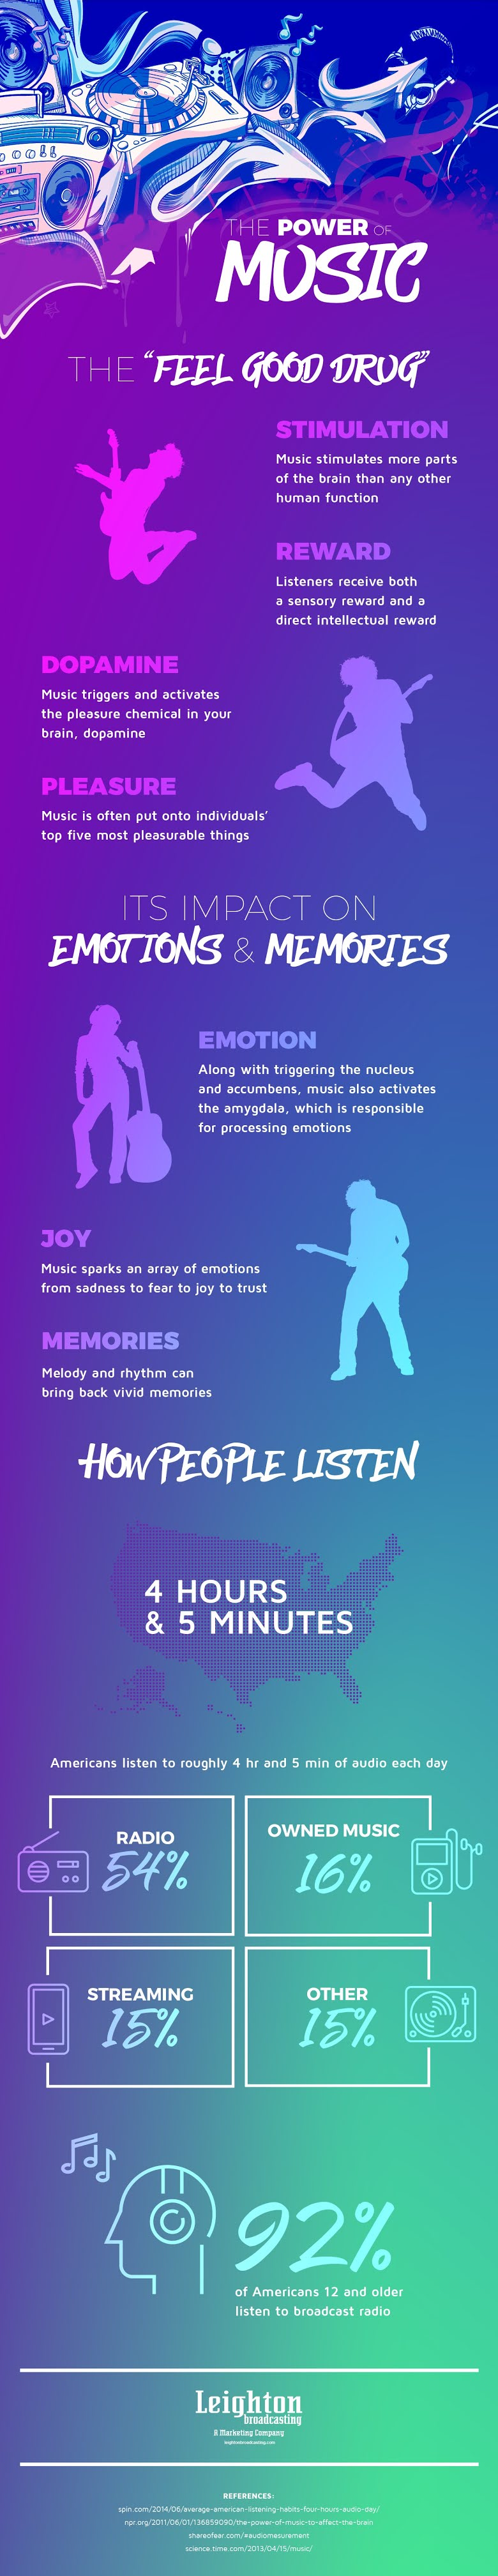 The Power Of Music #infographic